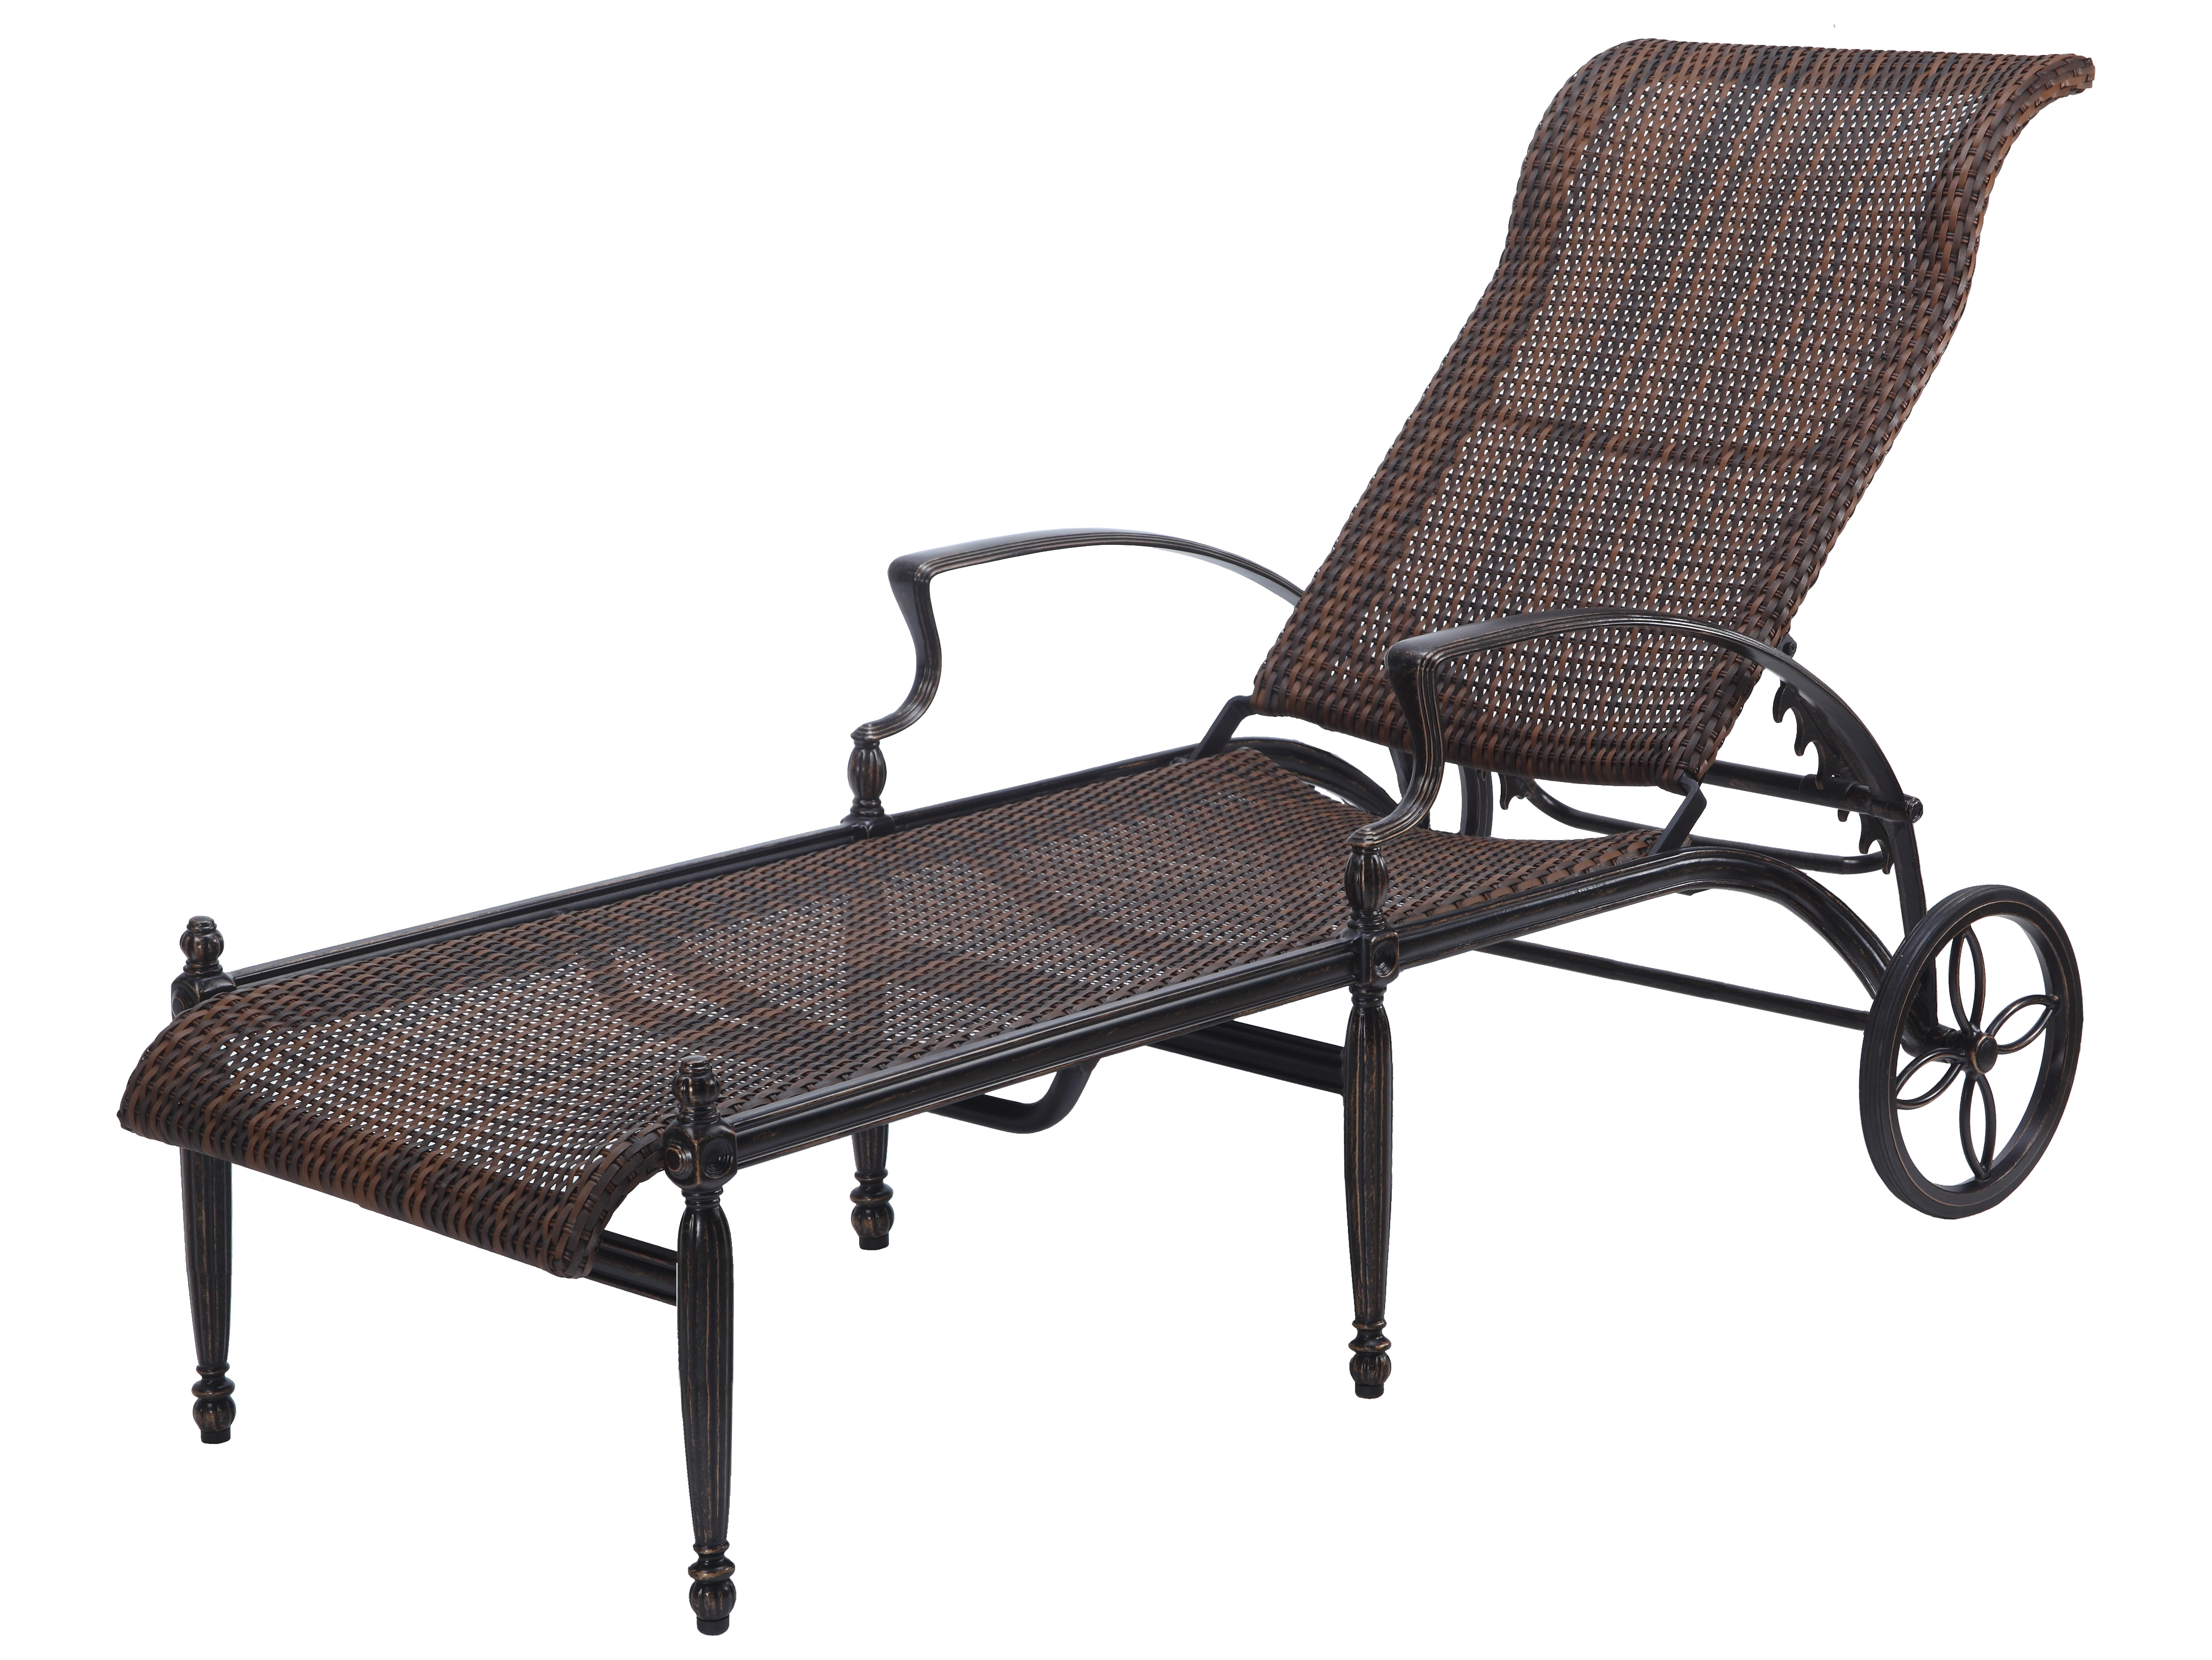 seating aluminum cabana lounge furniture stores hauser patios collections outdoor cast chaise chair for